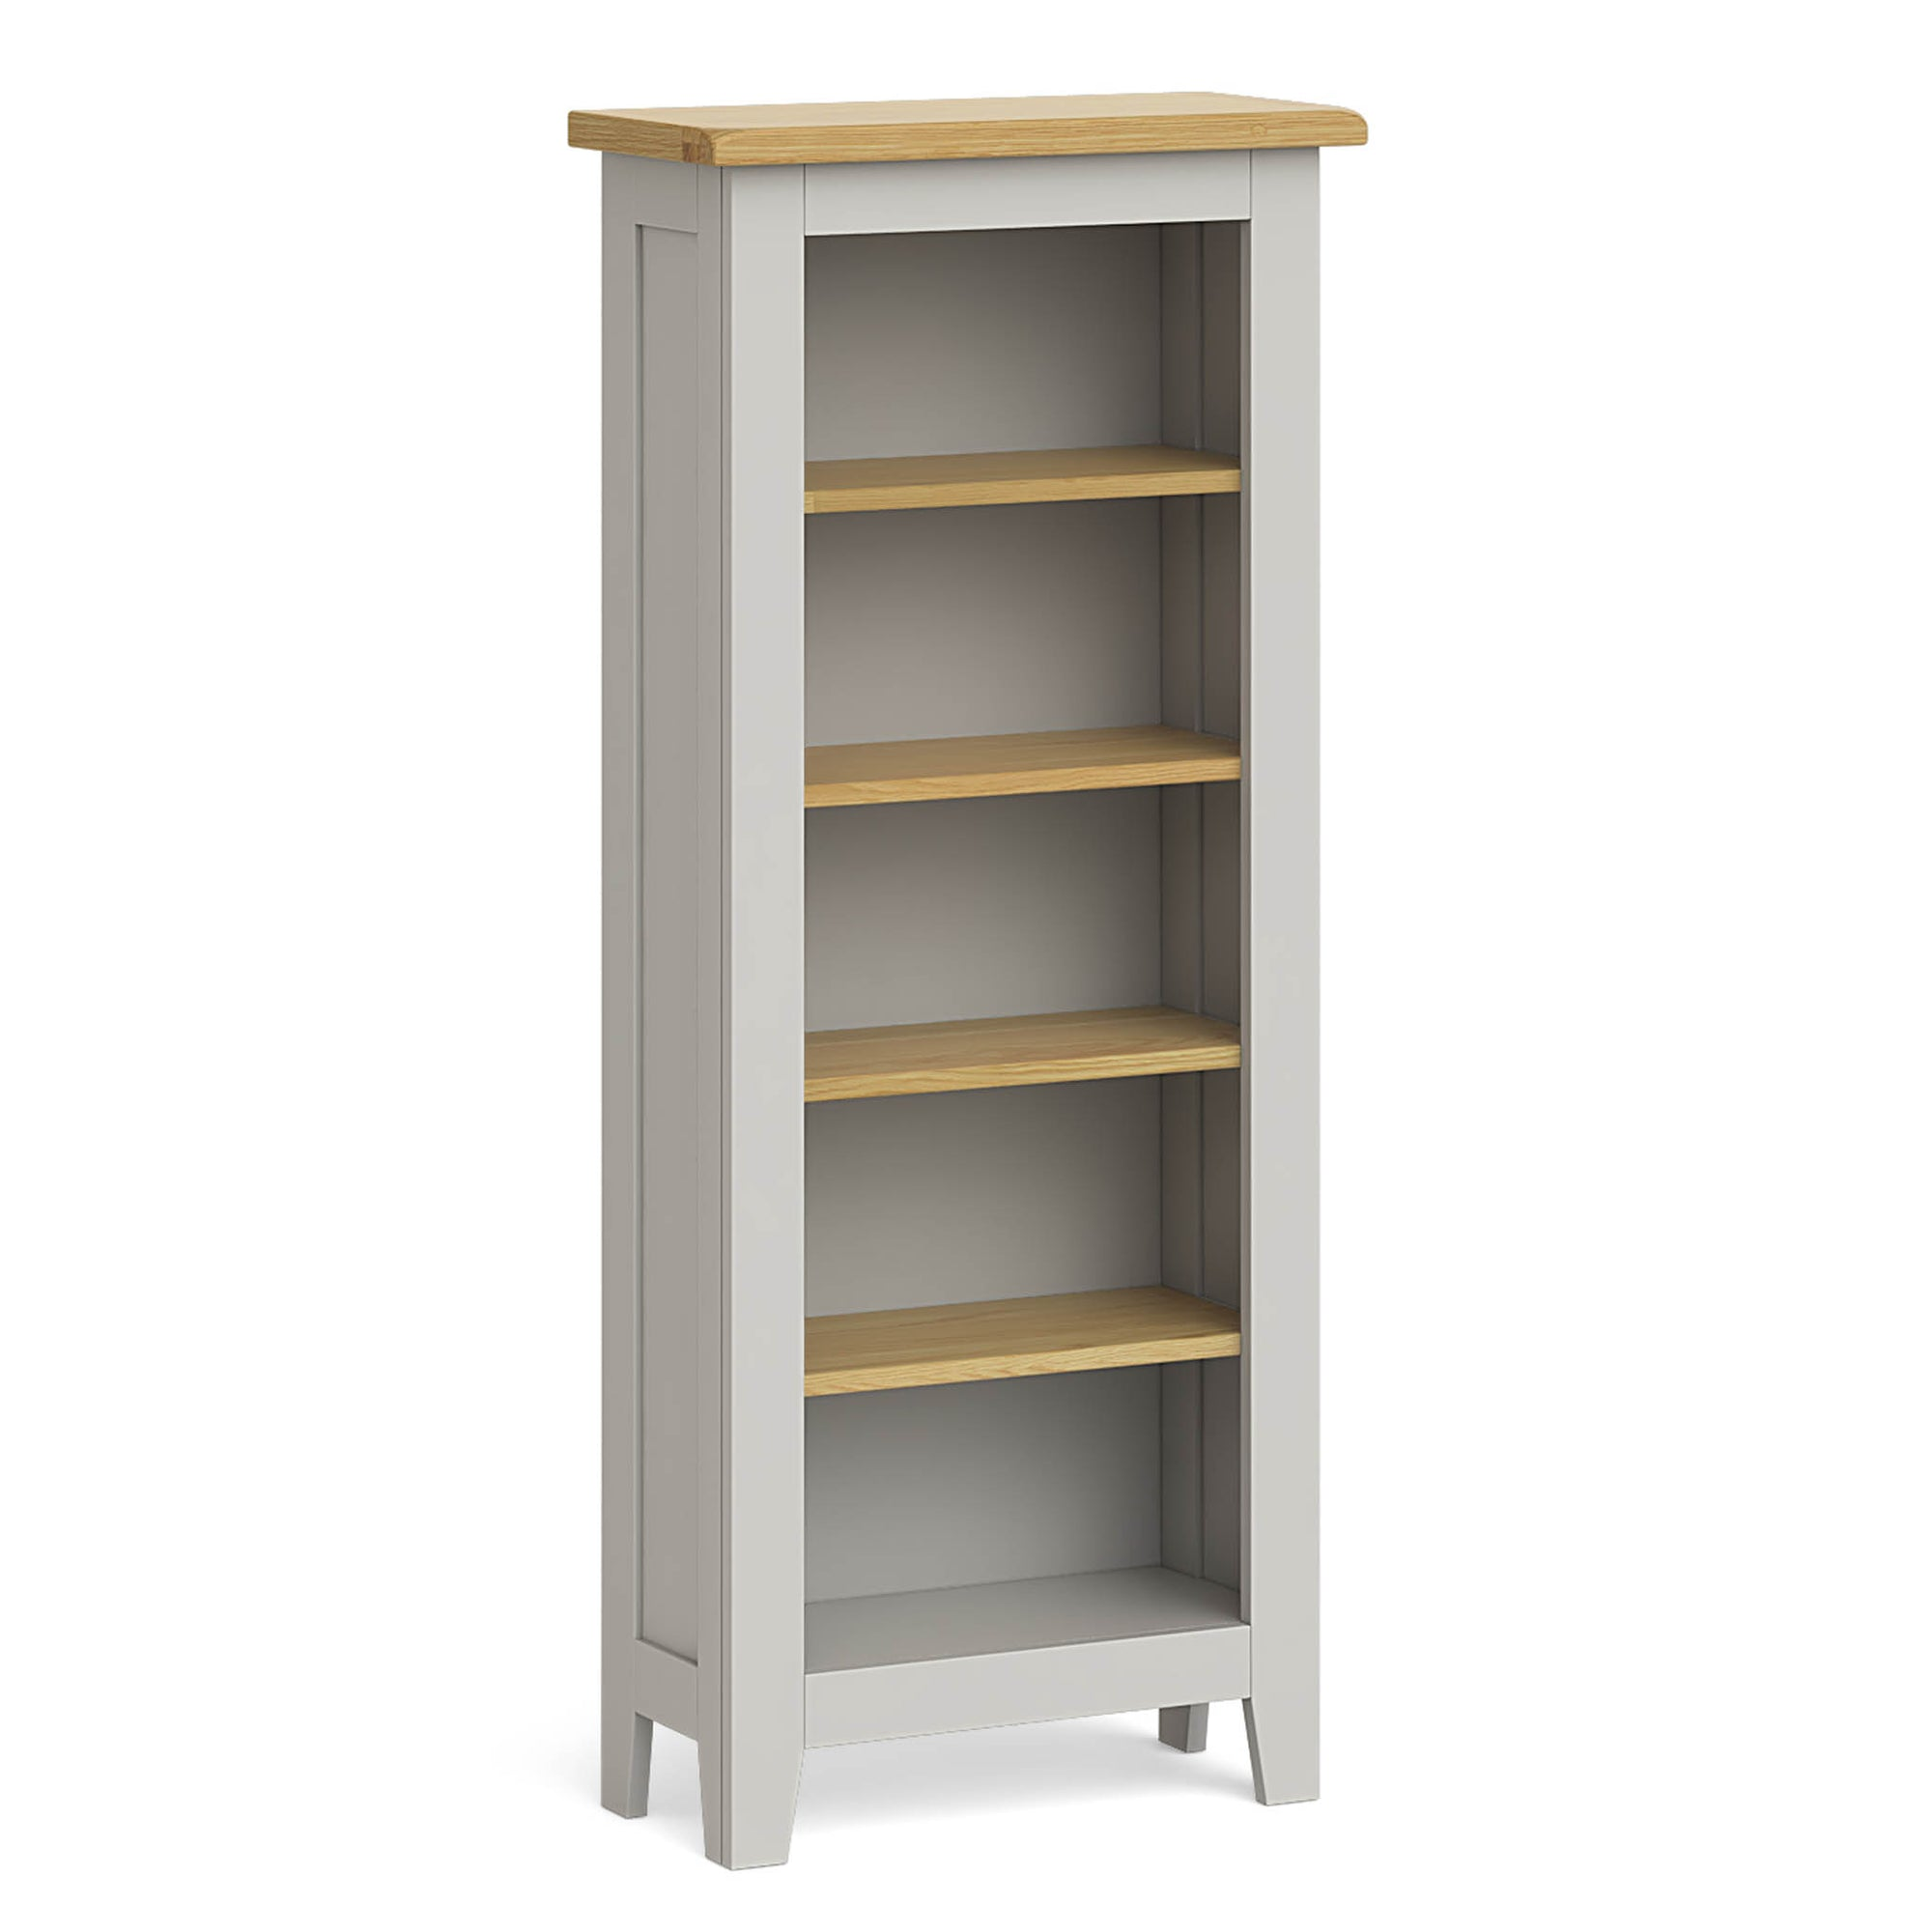 Lundy Grey Narrow Bookcase by Roseland Furniture